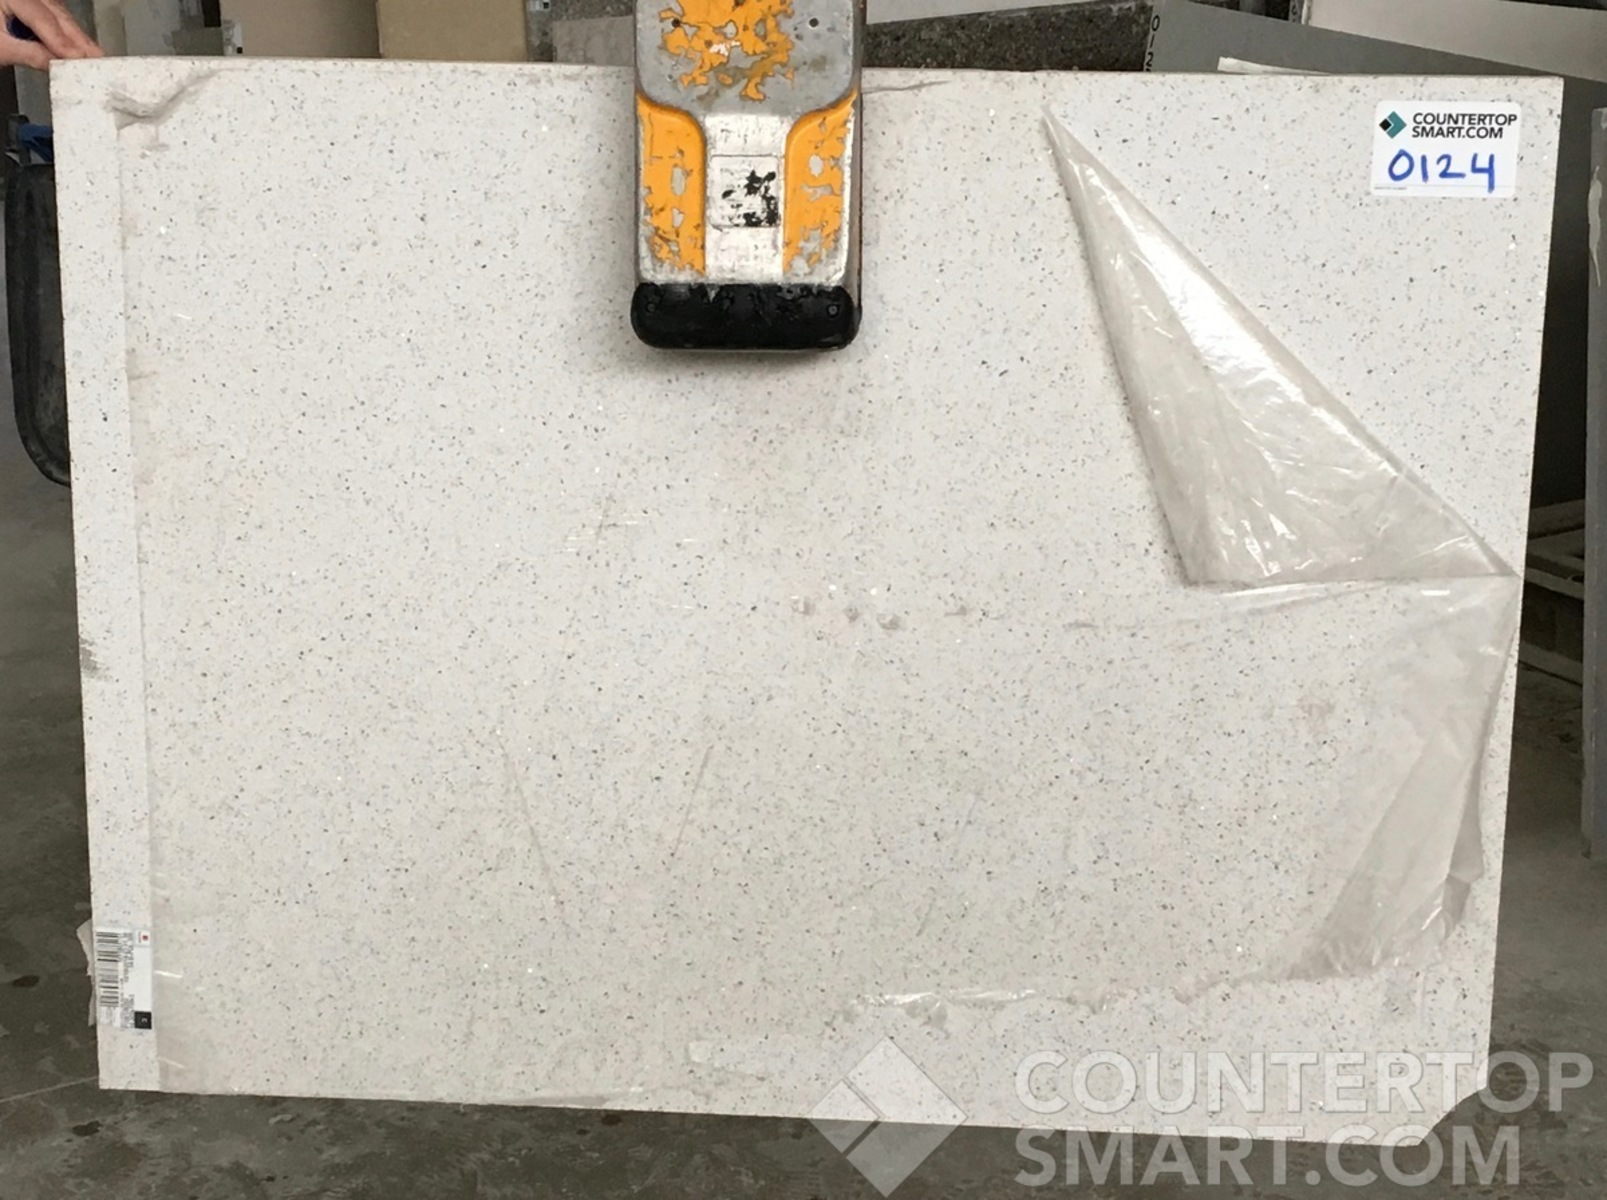 90 Off Your Perfect Quartz Engineered Silestone Stellar Snow Countertop Remnant In Austin Texas Only 225 66